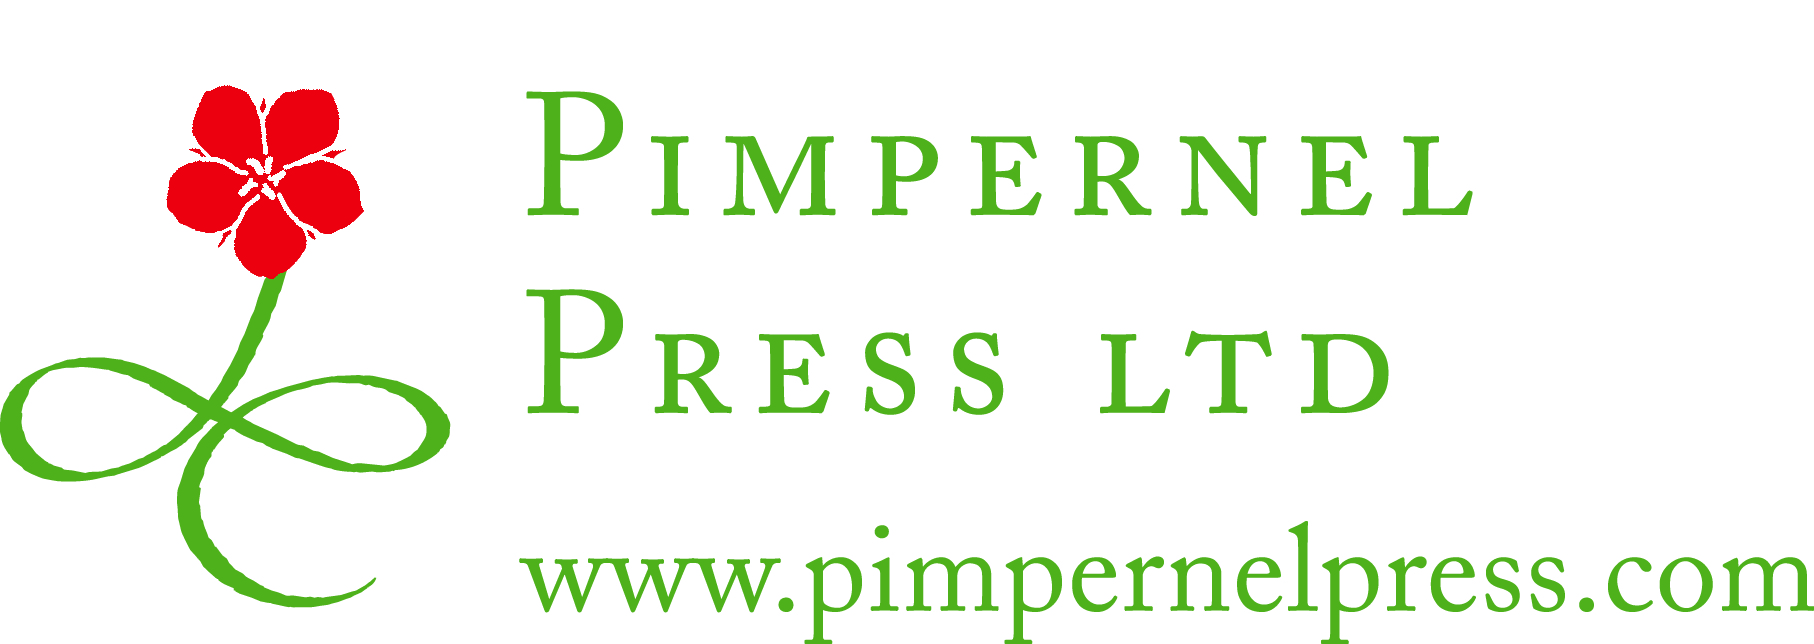 Pimpernel Press